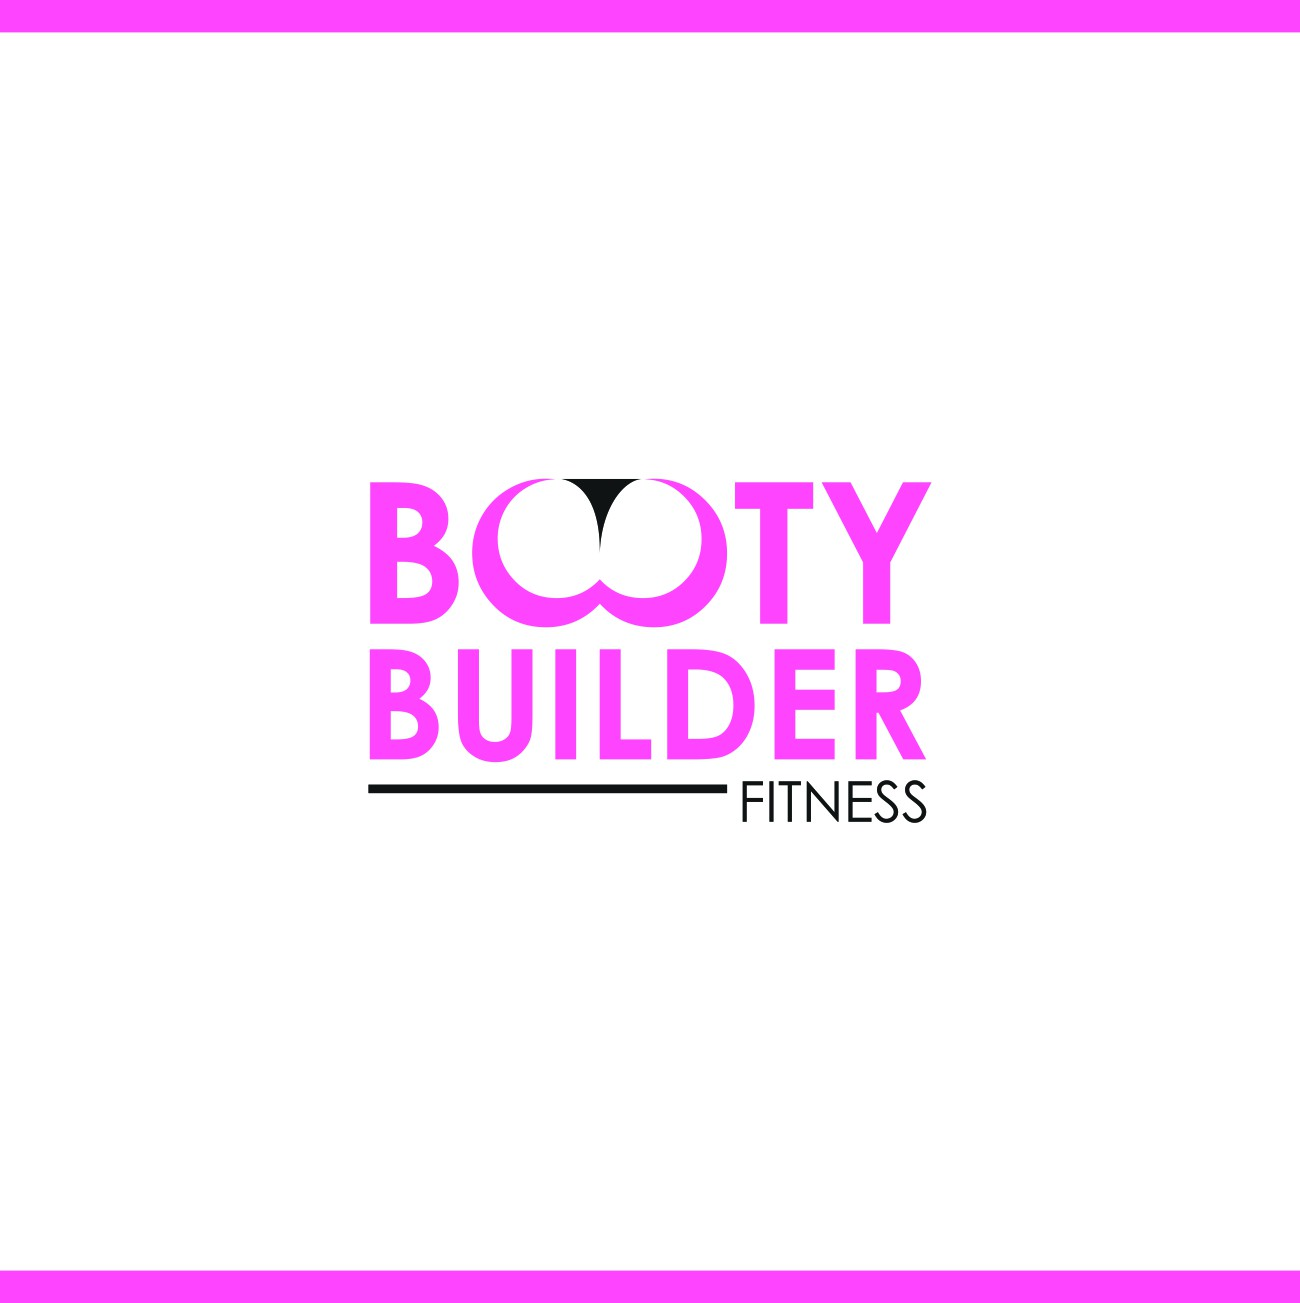 Booty Builder Fitness needs an amazing logo!